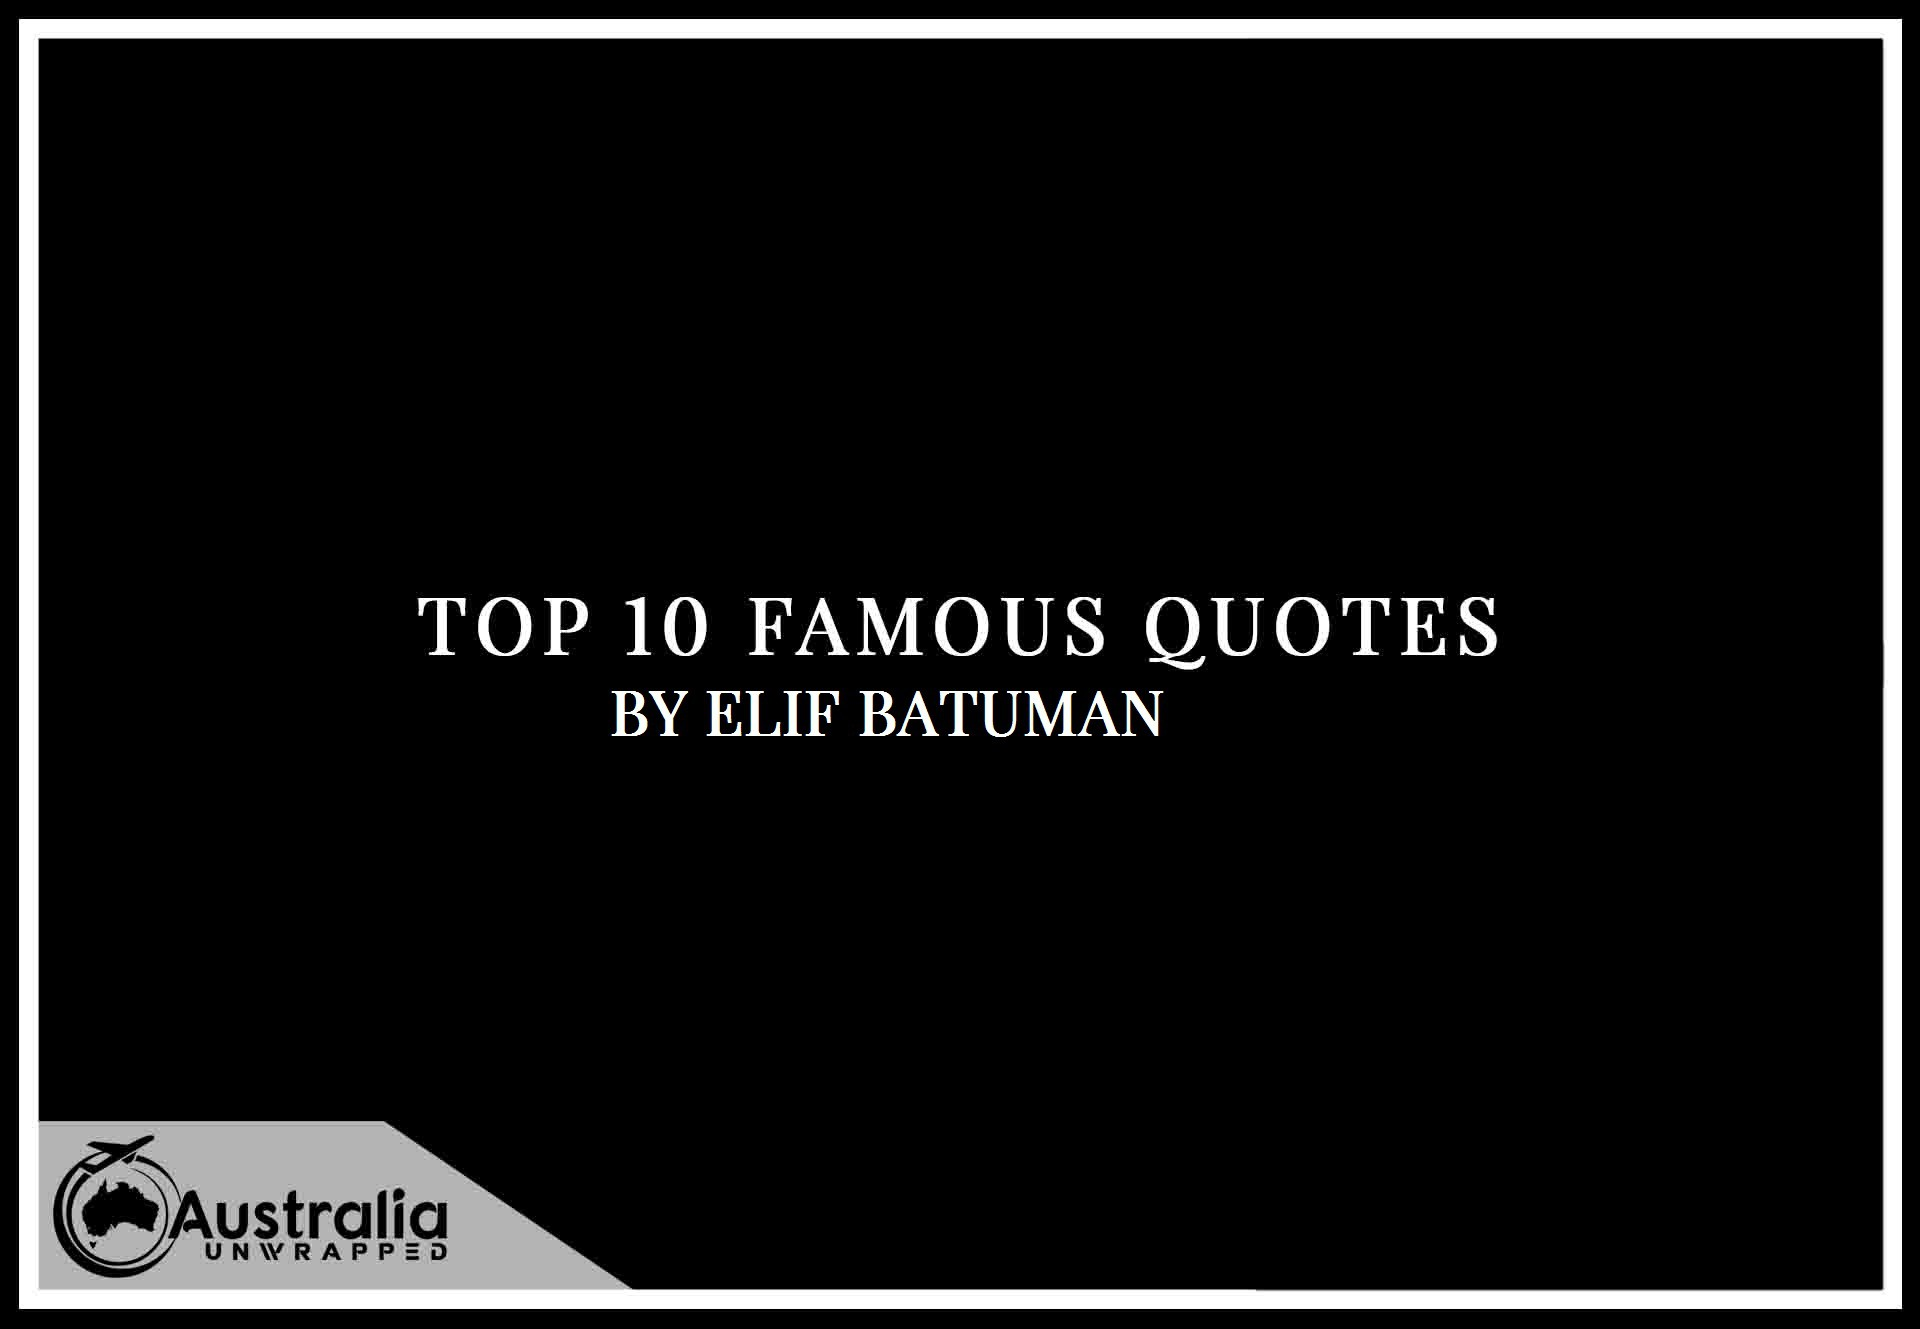 Elif Batuman's Top 10 Popular and Famous Quotes